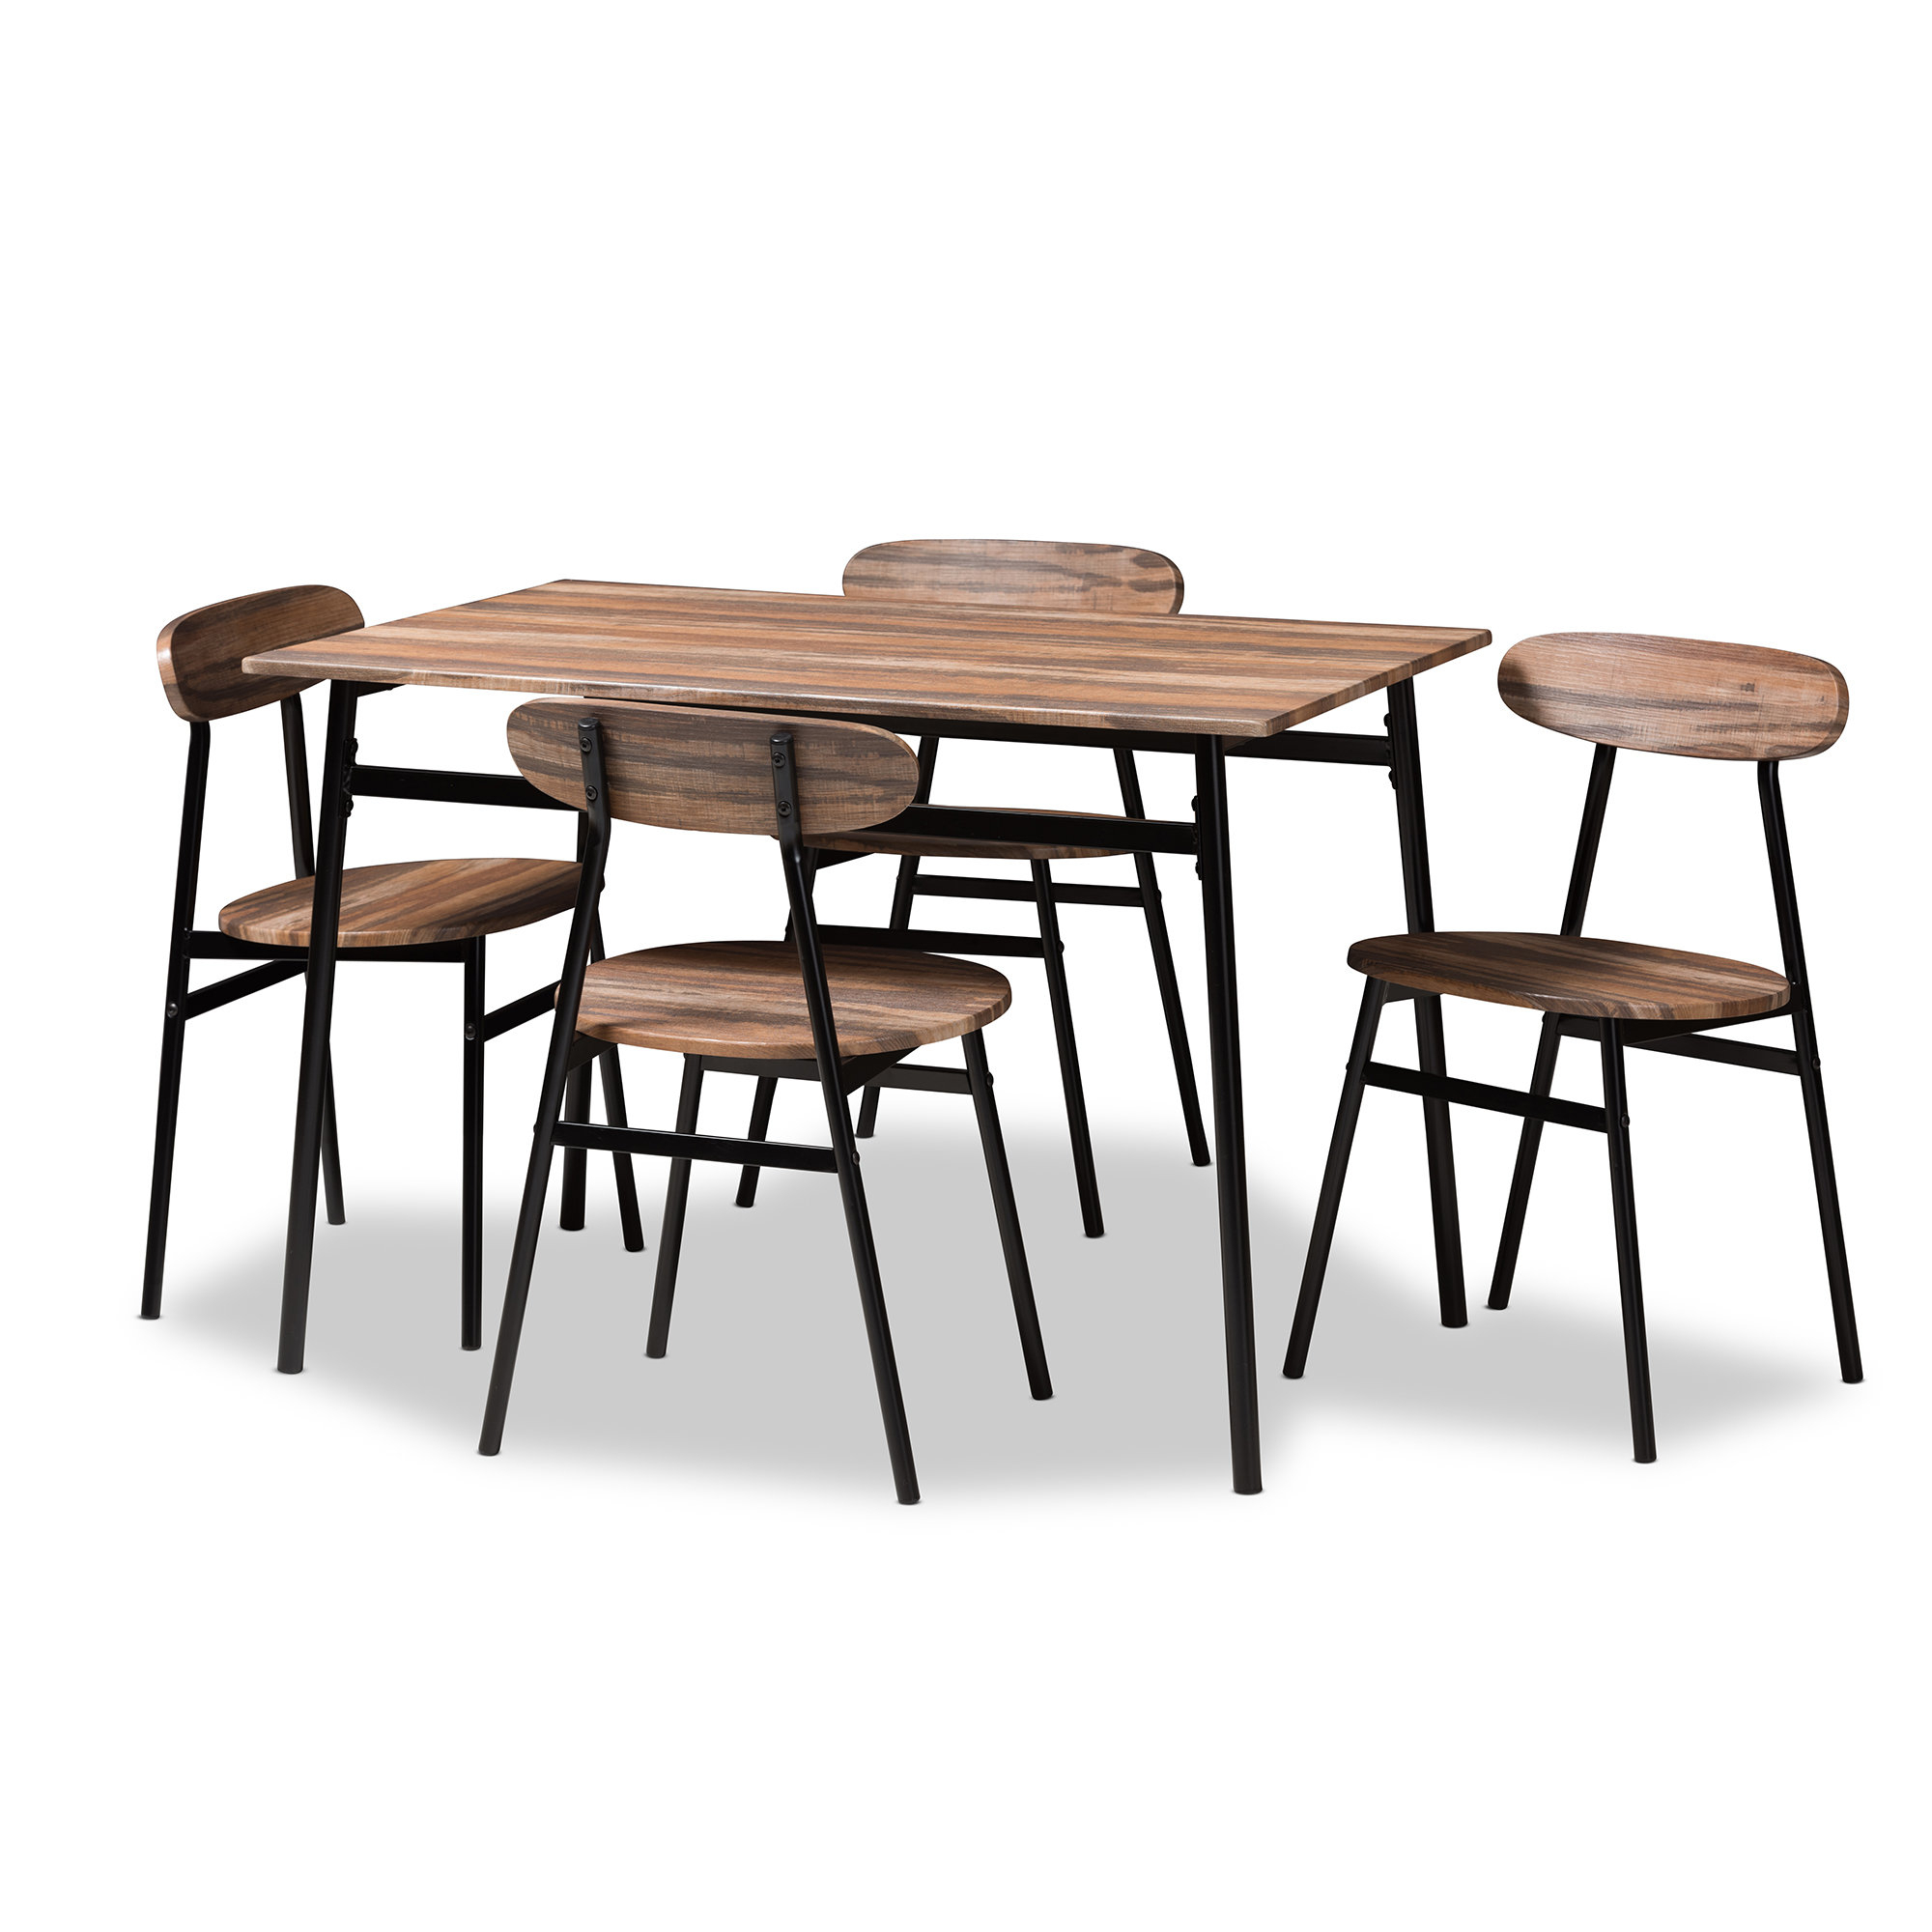 Telauges 5 Piece Dining Set Within 2018 Casiano 5 Piece Dining Sets (Photo 4 of 20)